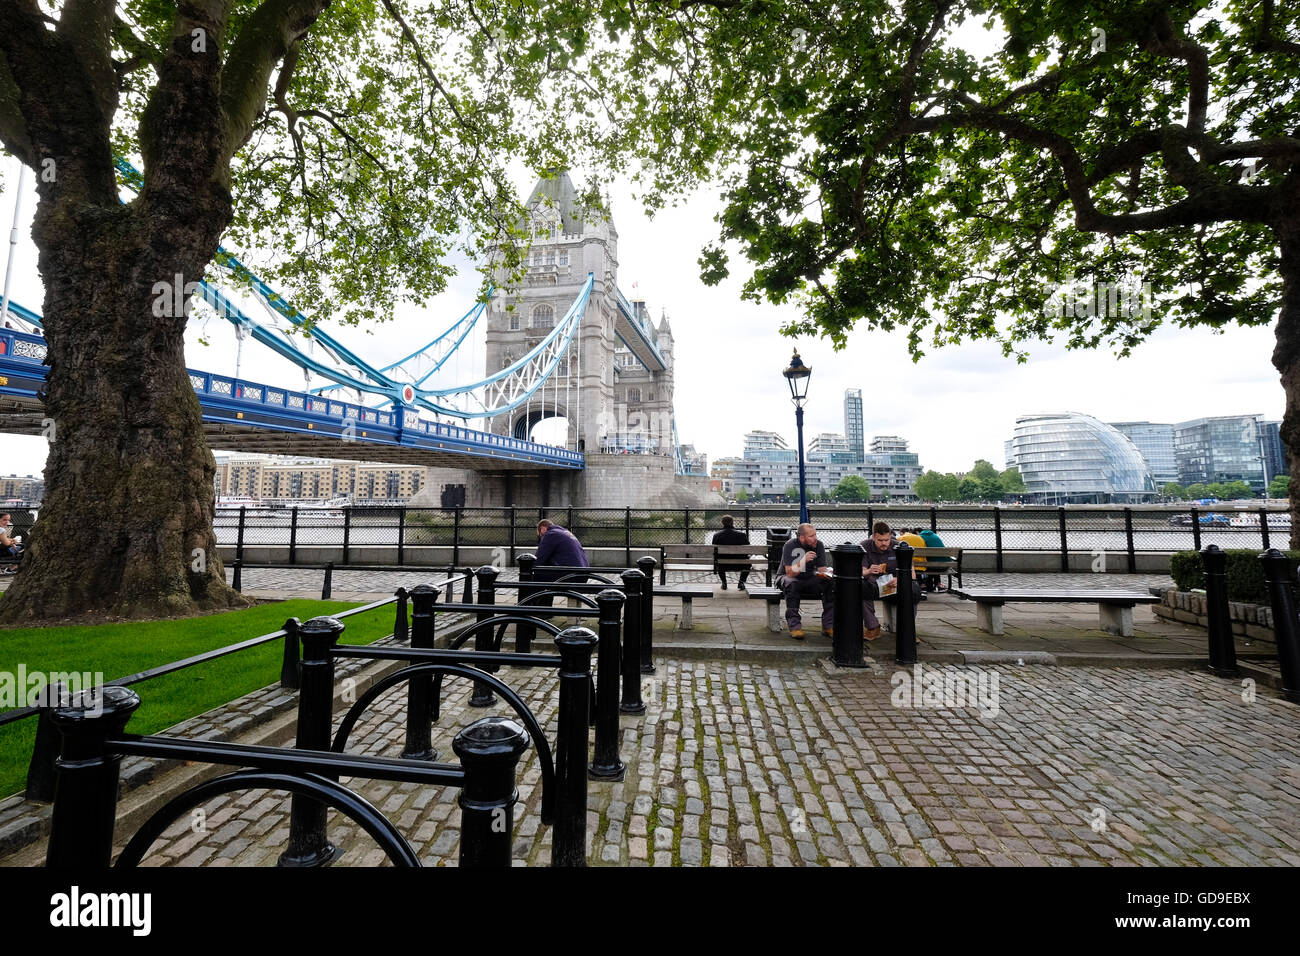 Victoria Embankment under the oak trees with Tower Bridge and the London skyline in the background - Stock Image